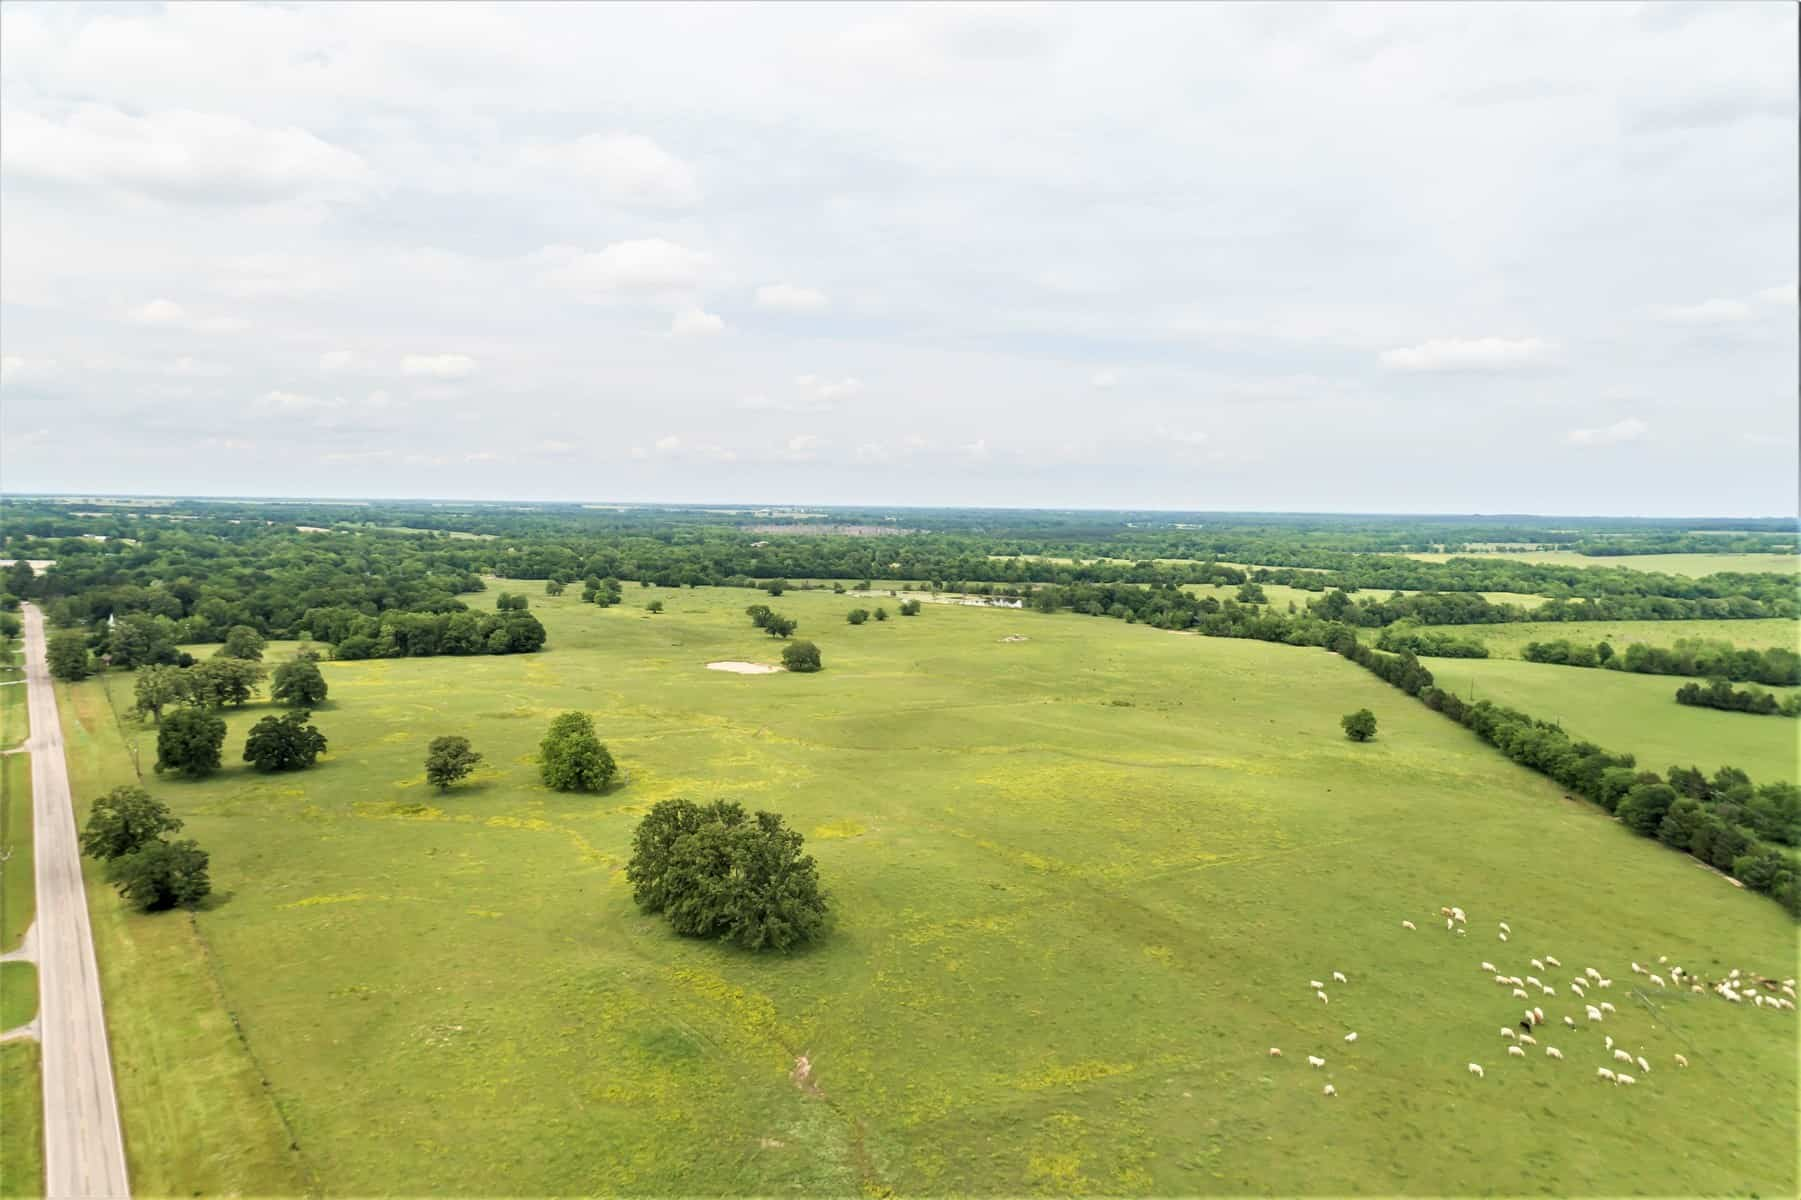 Cattle Ranch and Hunting Land for Sale|Texas